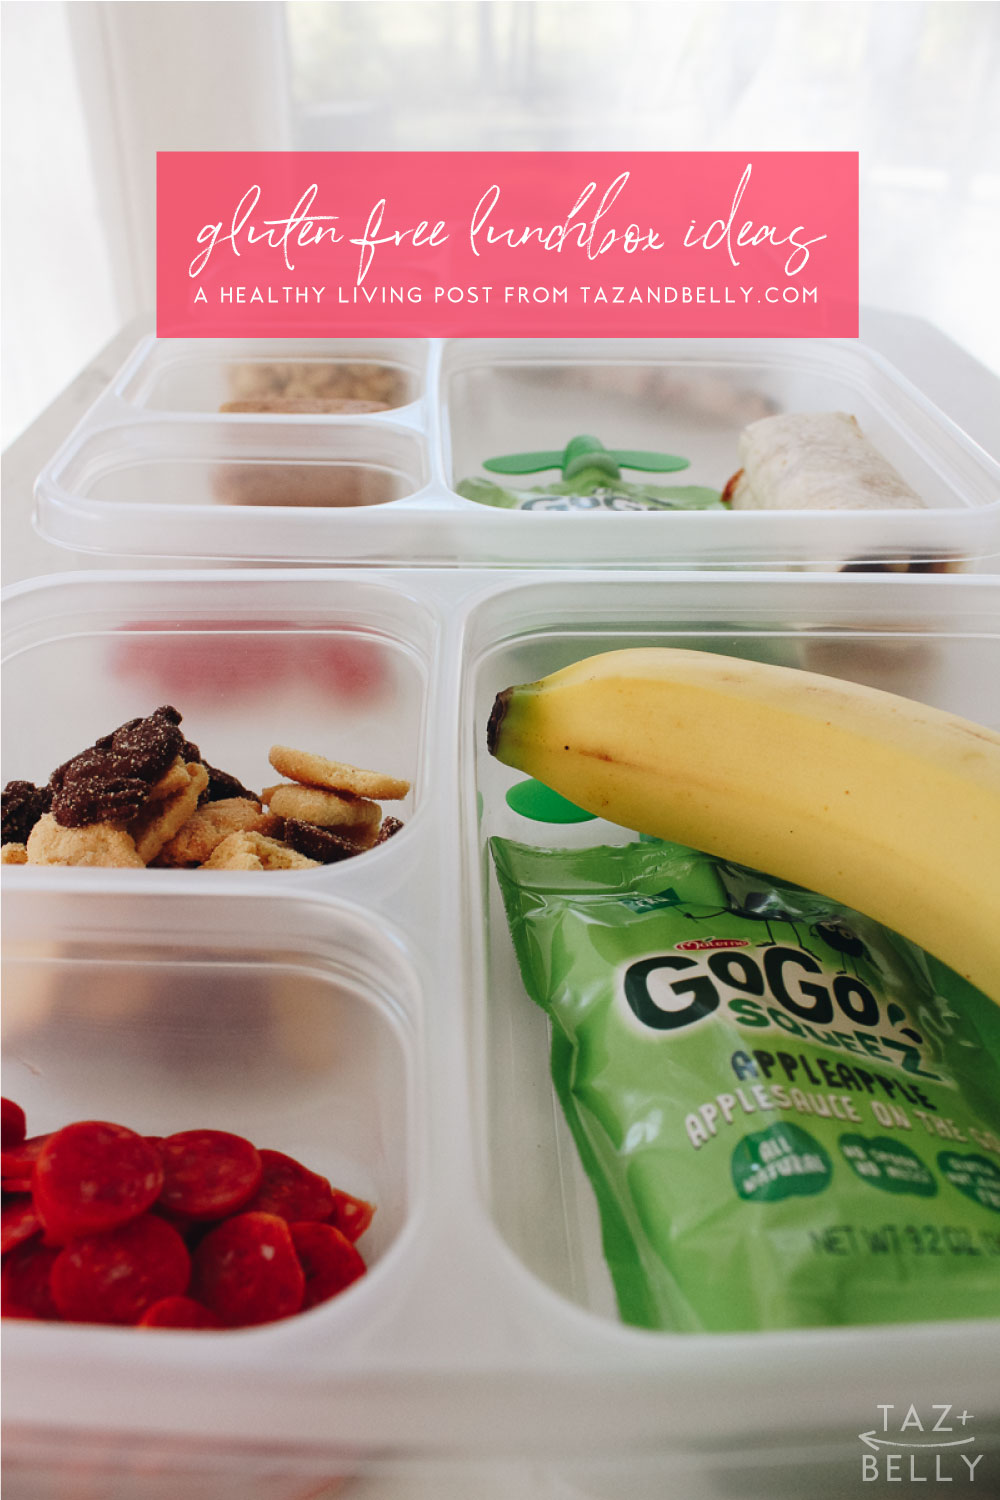 Gluten Free Lunchbox Ideas | tazandbelly.com